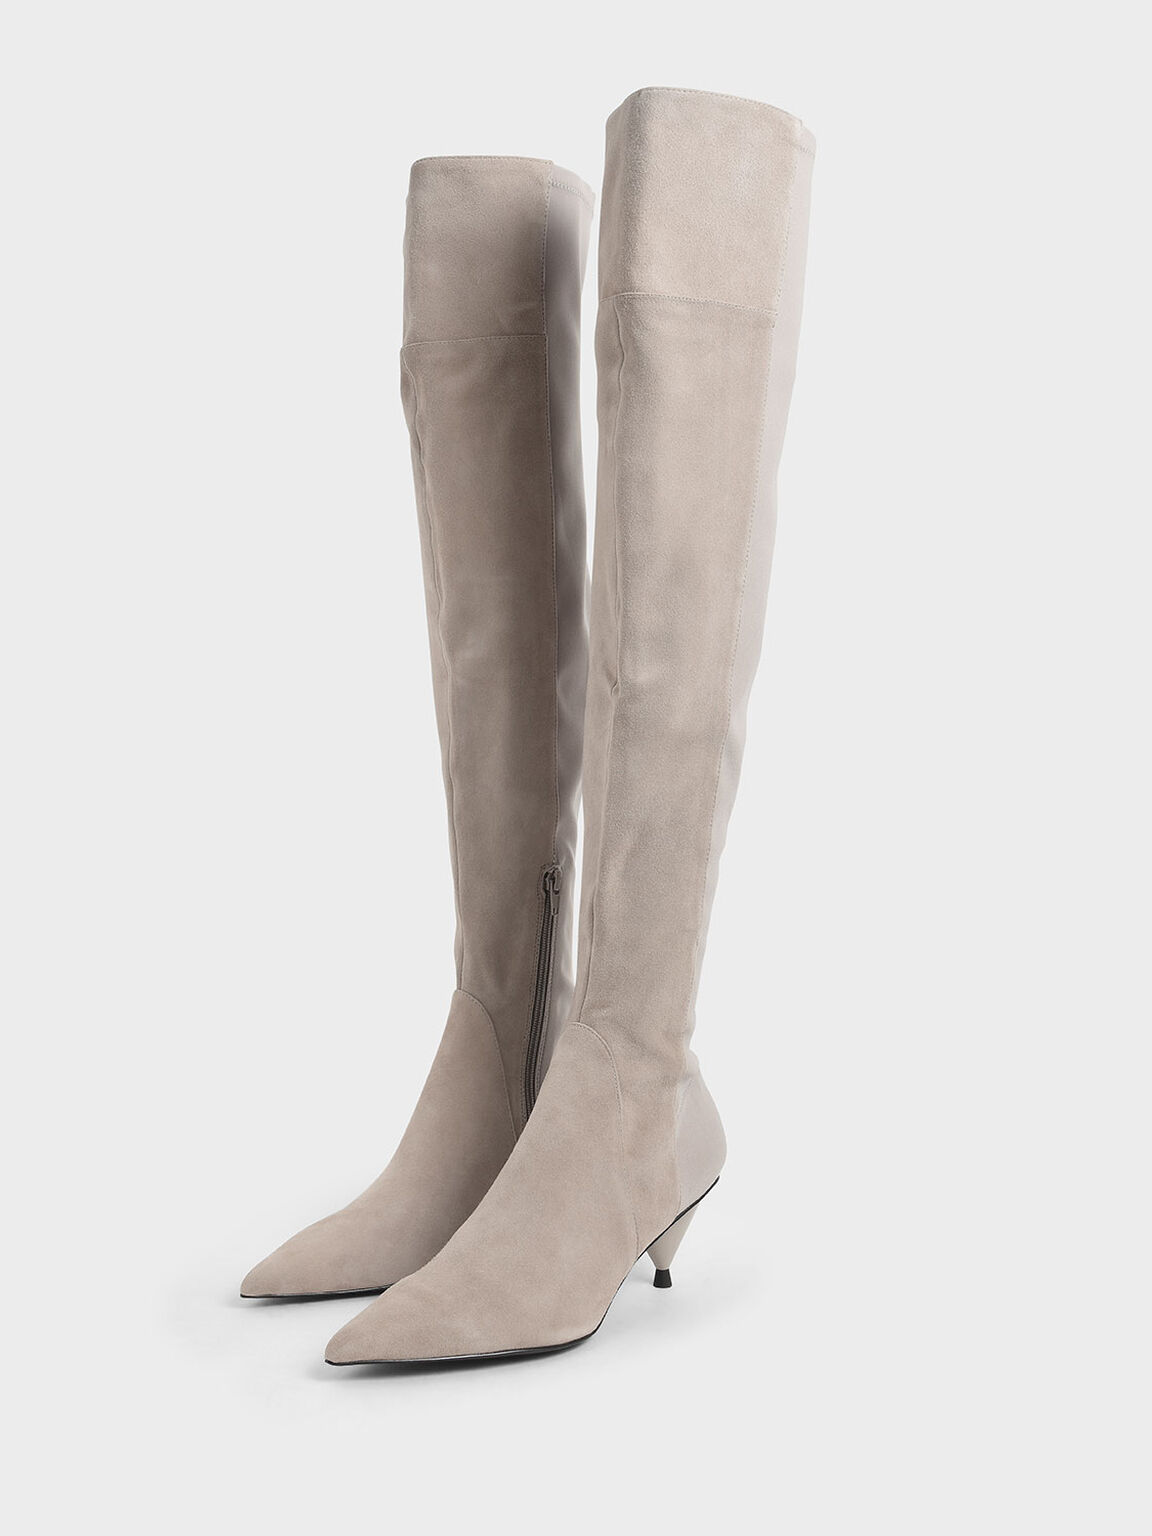 Thigh High Boots (Kid Suede), Grey, hi-res